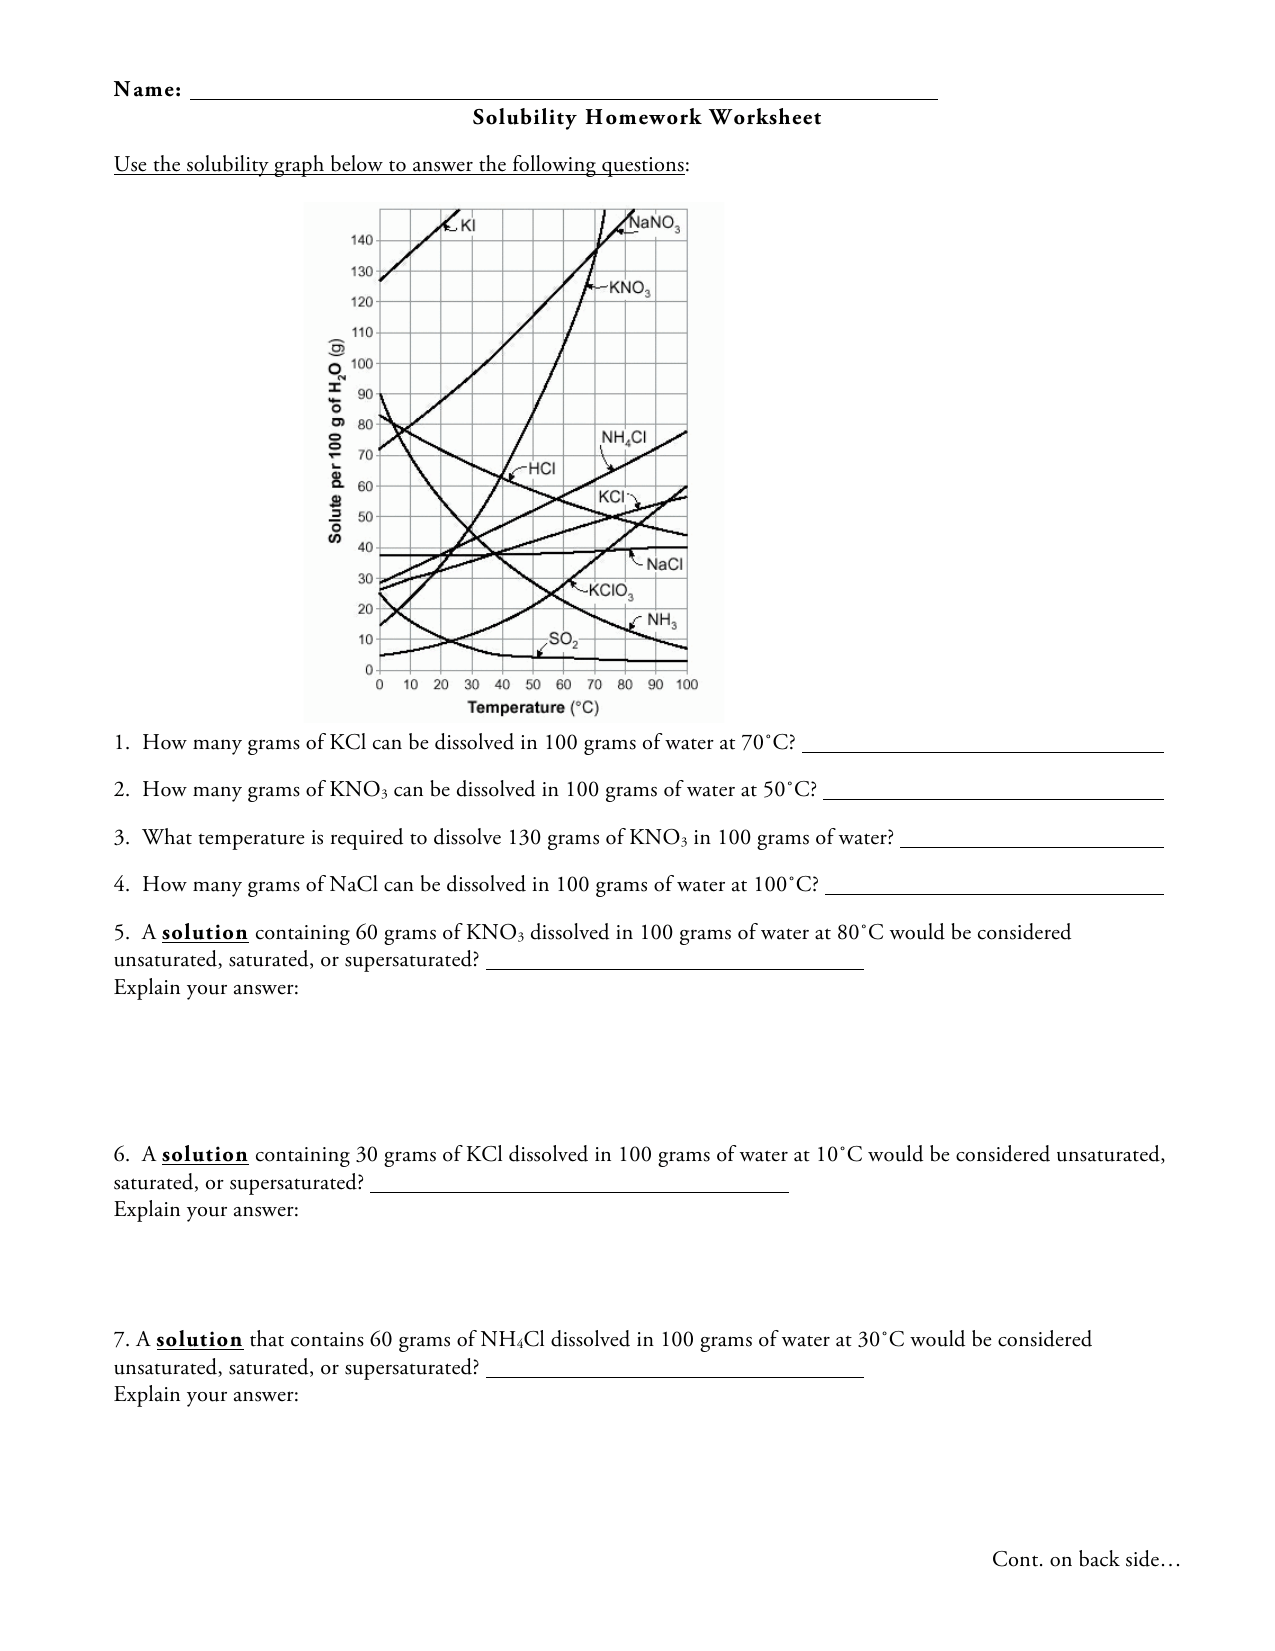 Name Solubility Homework Worksheet Use The Solubility Graph